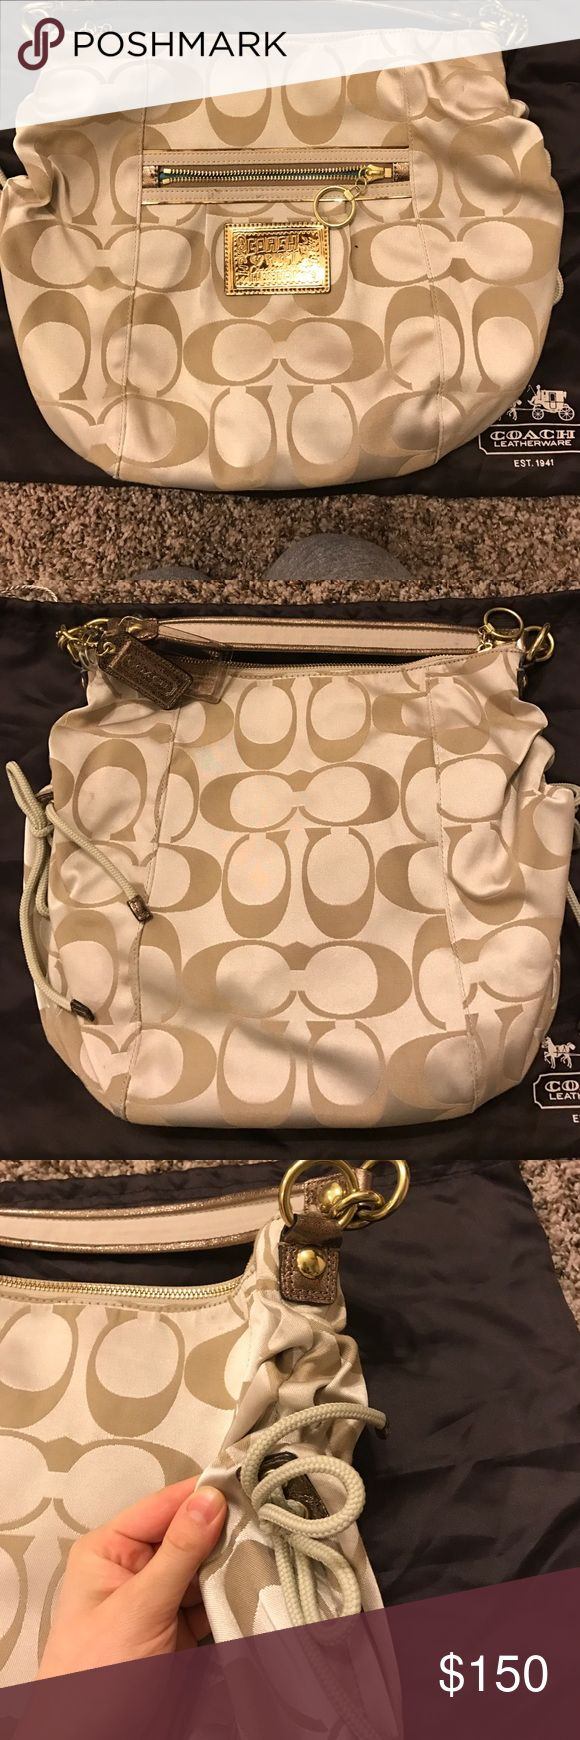 "Cream signature Coach hobo bag Cream signature Coach hobo bag. Has ties on each side. Gold embellishments. Fun clear ""Coach"" luggage tag. Strap is sparkly copperish color. Coach Bags Hobos"